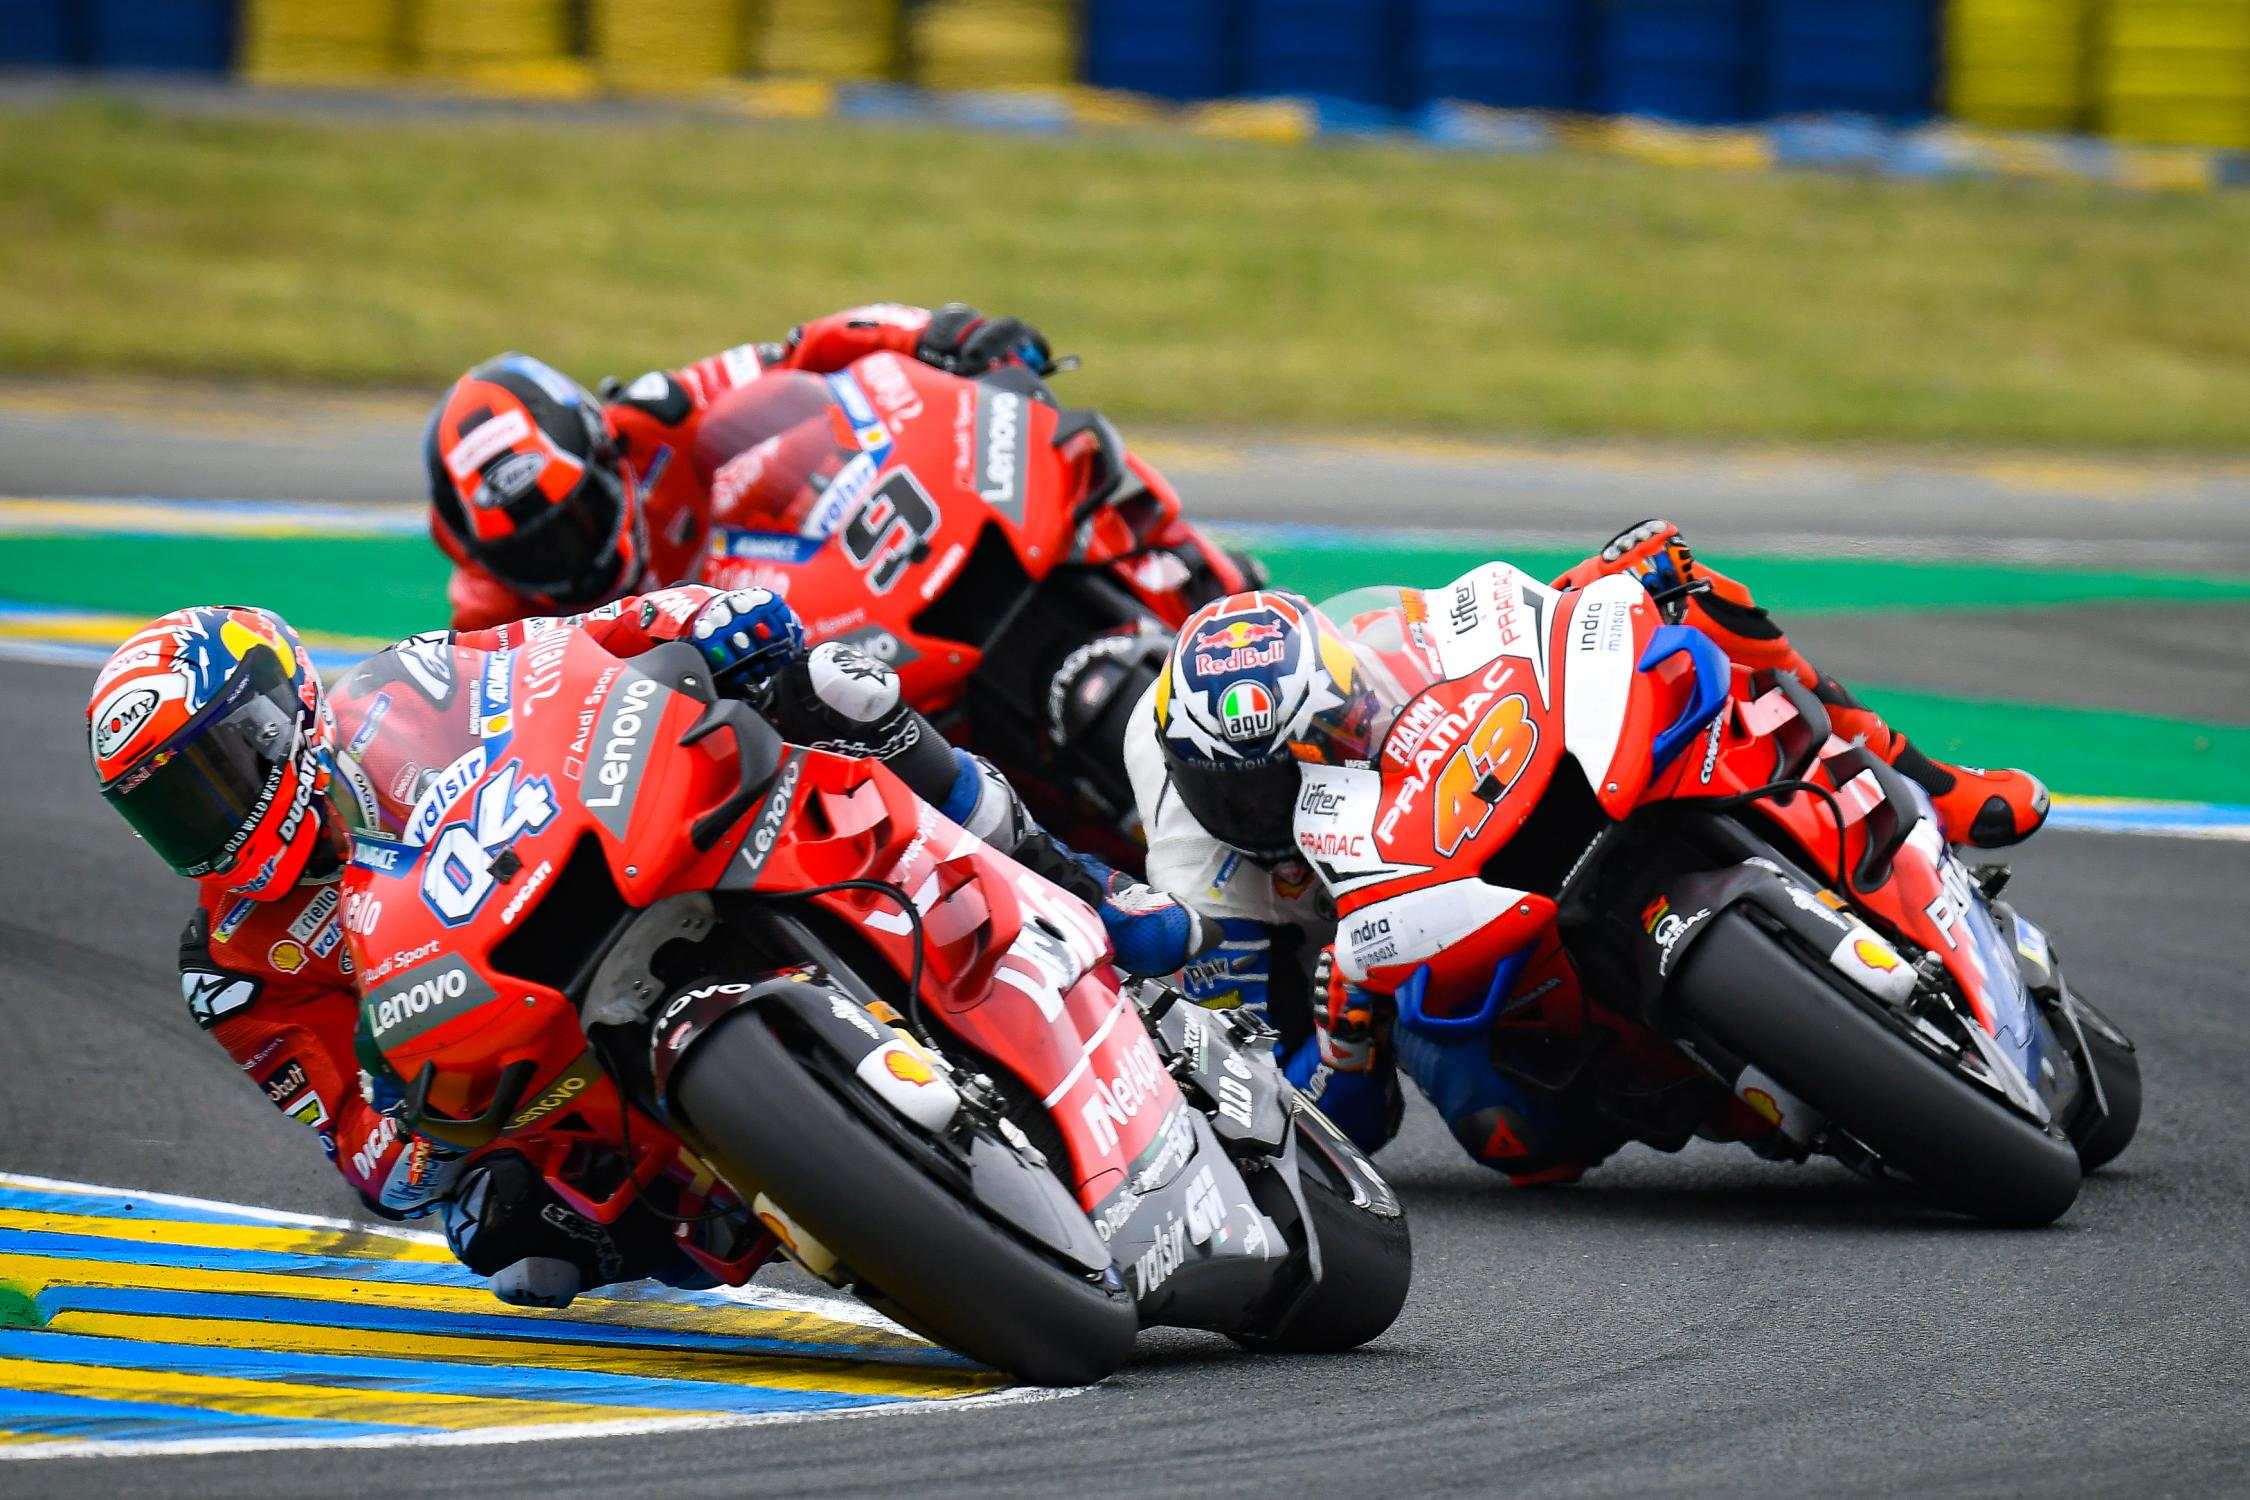 Ducati enfila Le Mans con optimismo justificado